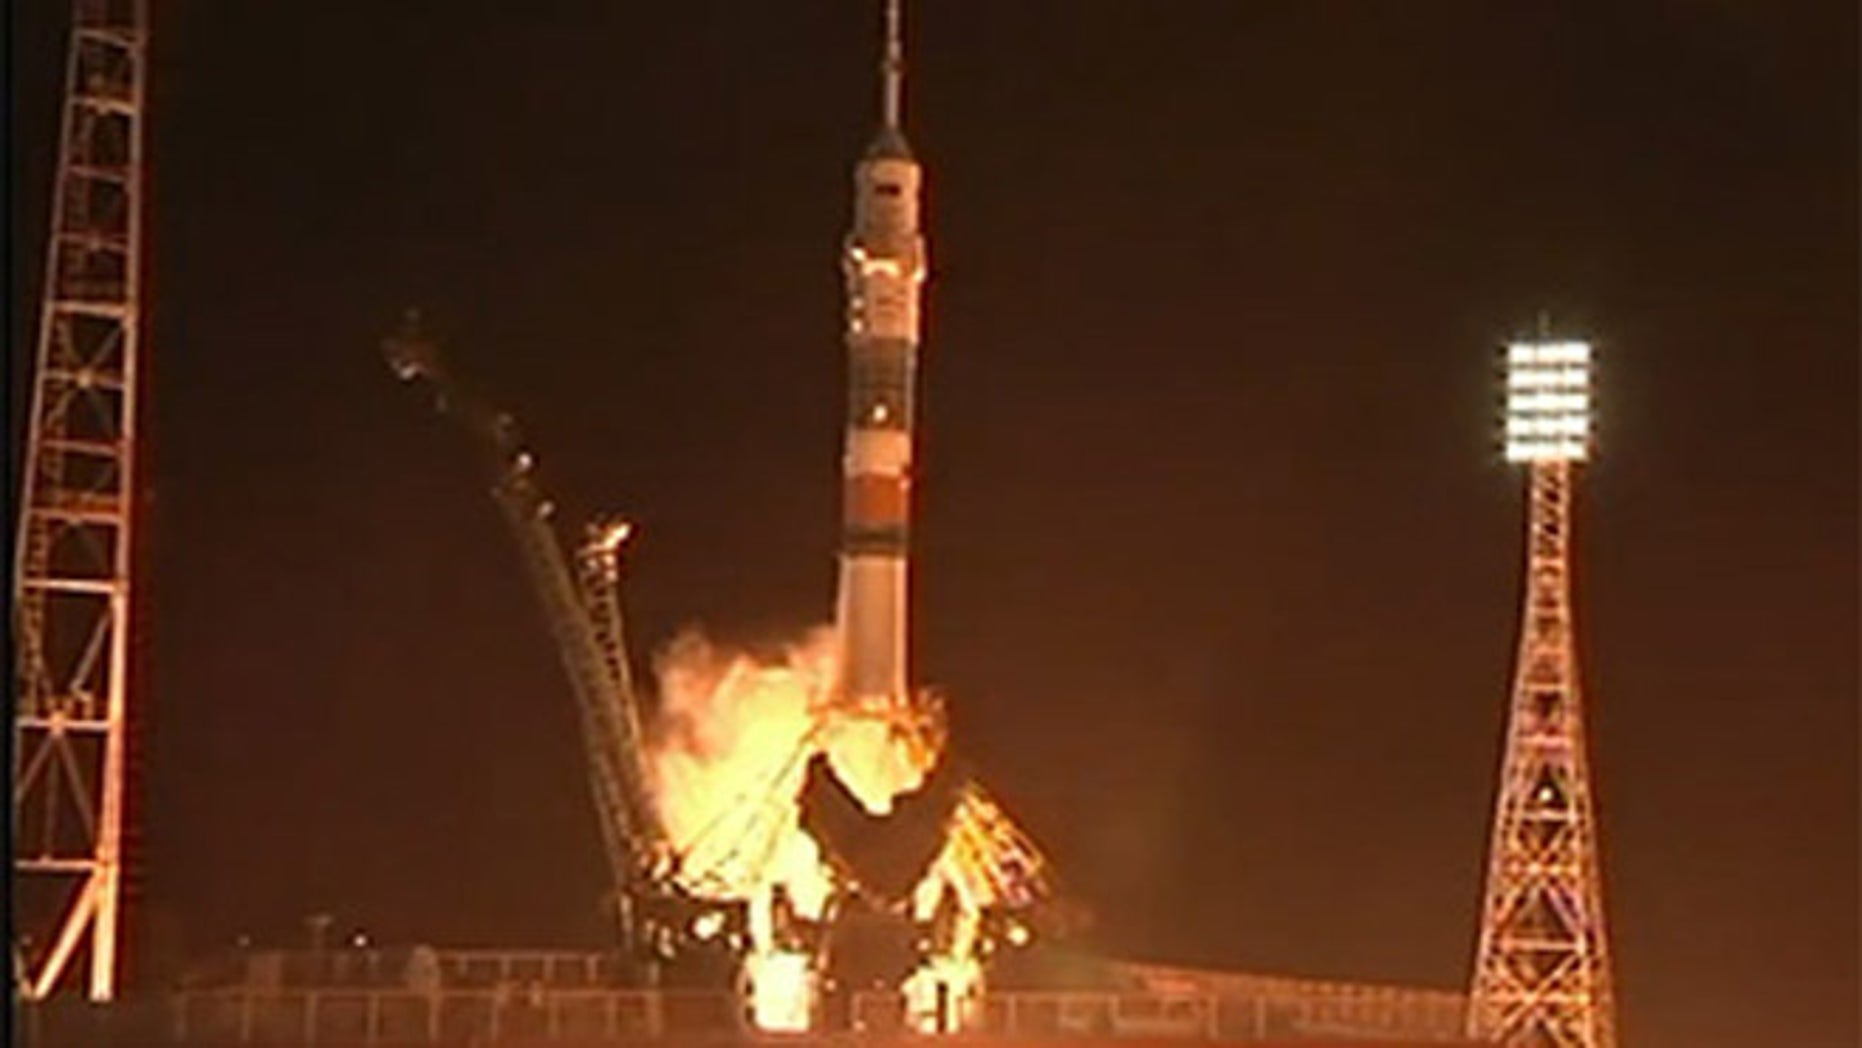 March 28, 2013: A Russian Soyuz rocket blasts off from the Central Asian spaceport of Baikonur Cosmodrome in Kazakhstan carrying a new crew to the International Space Station.